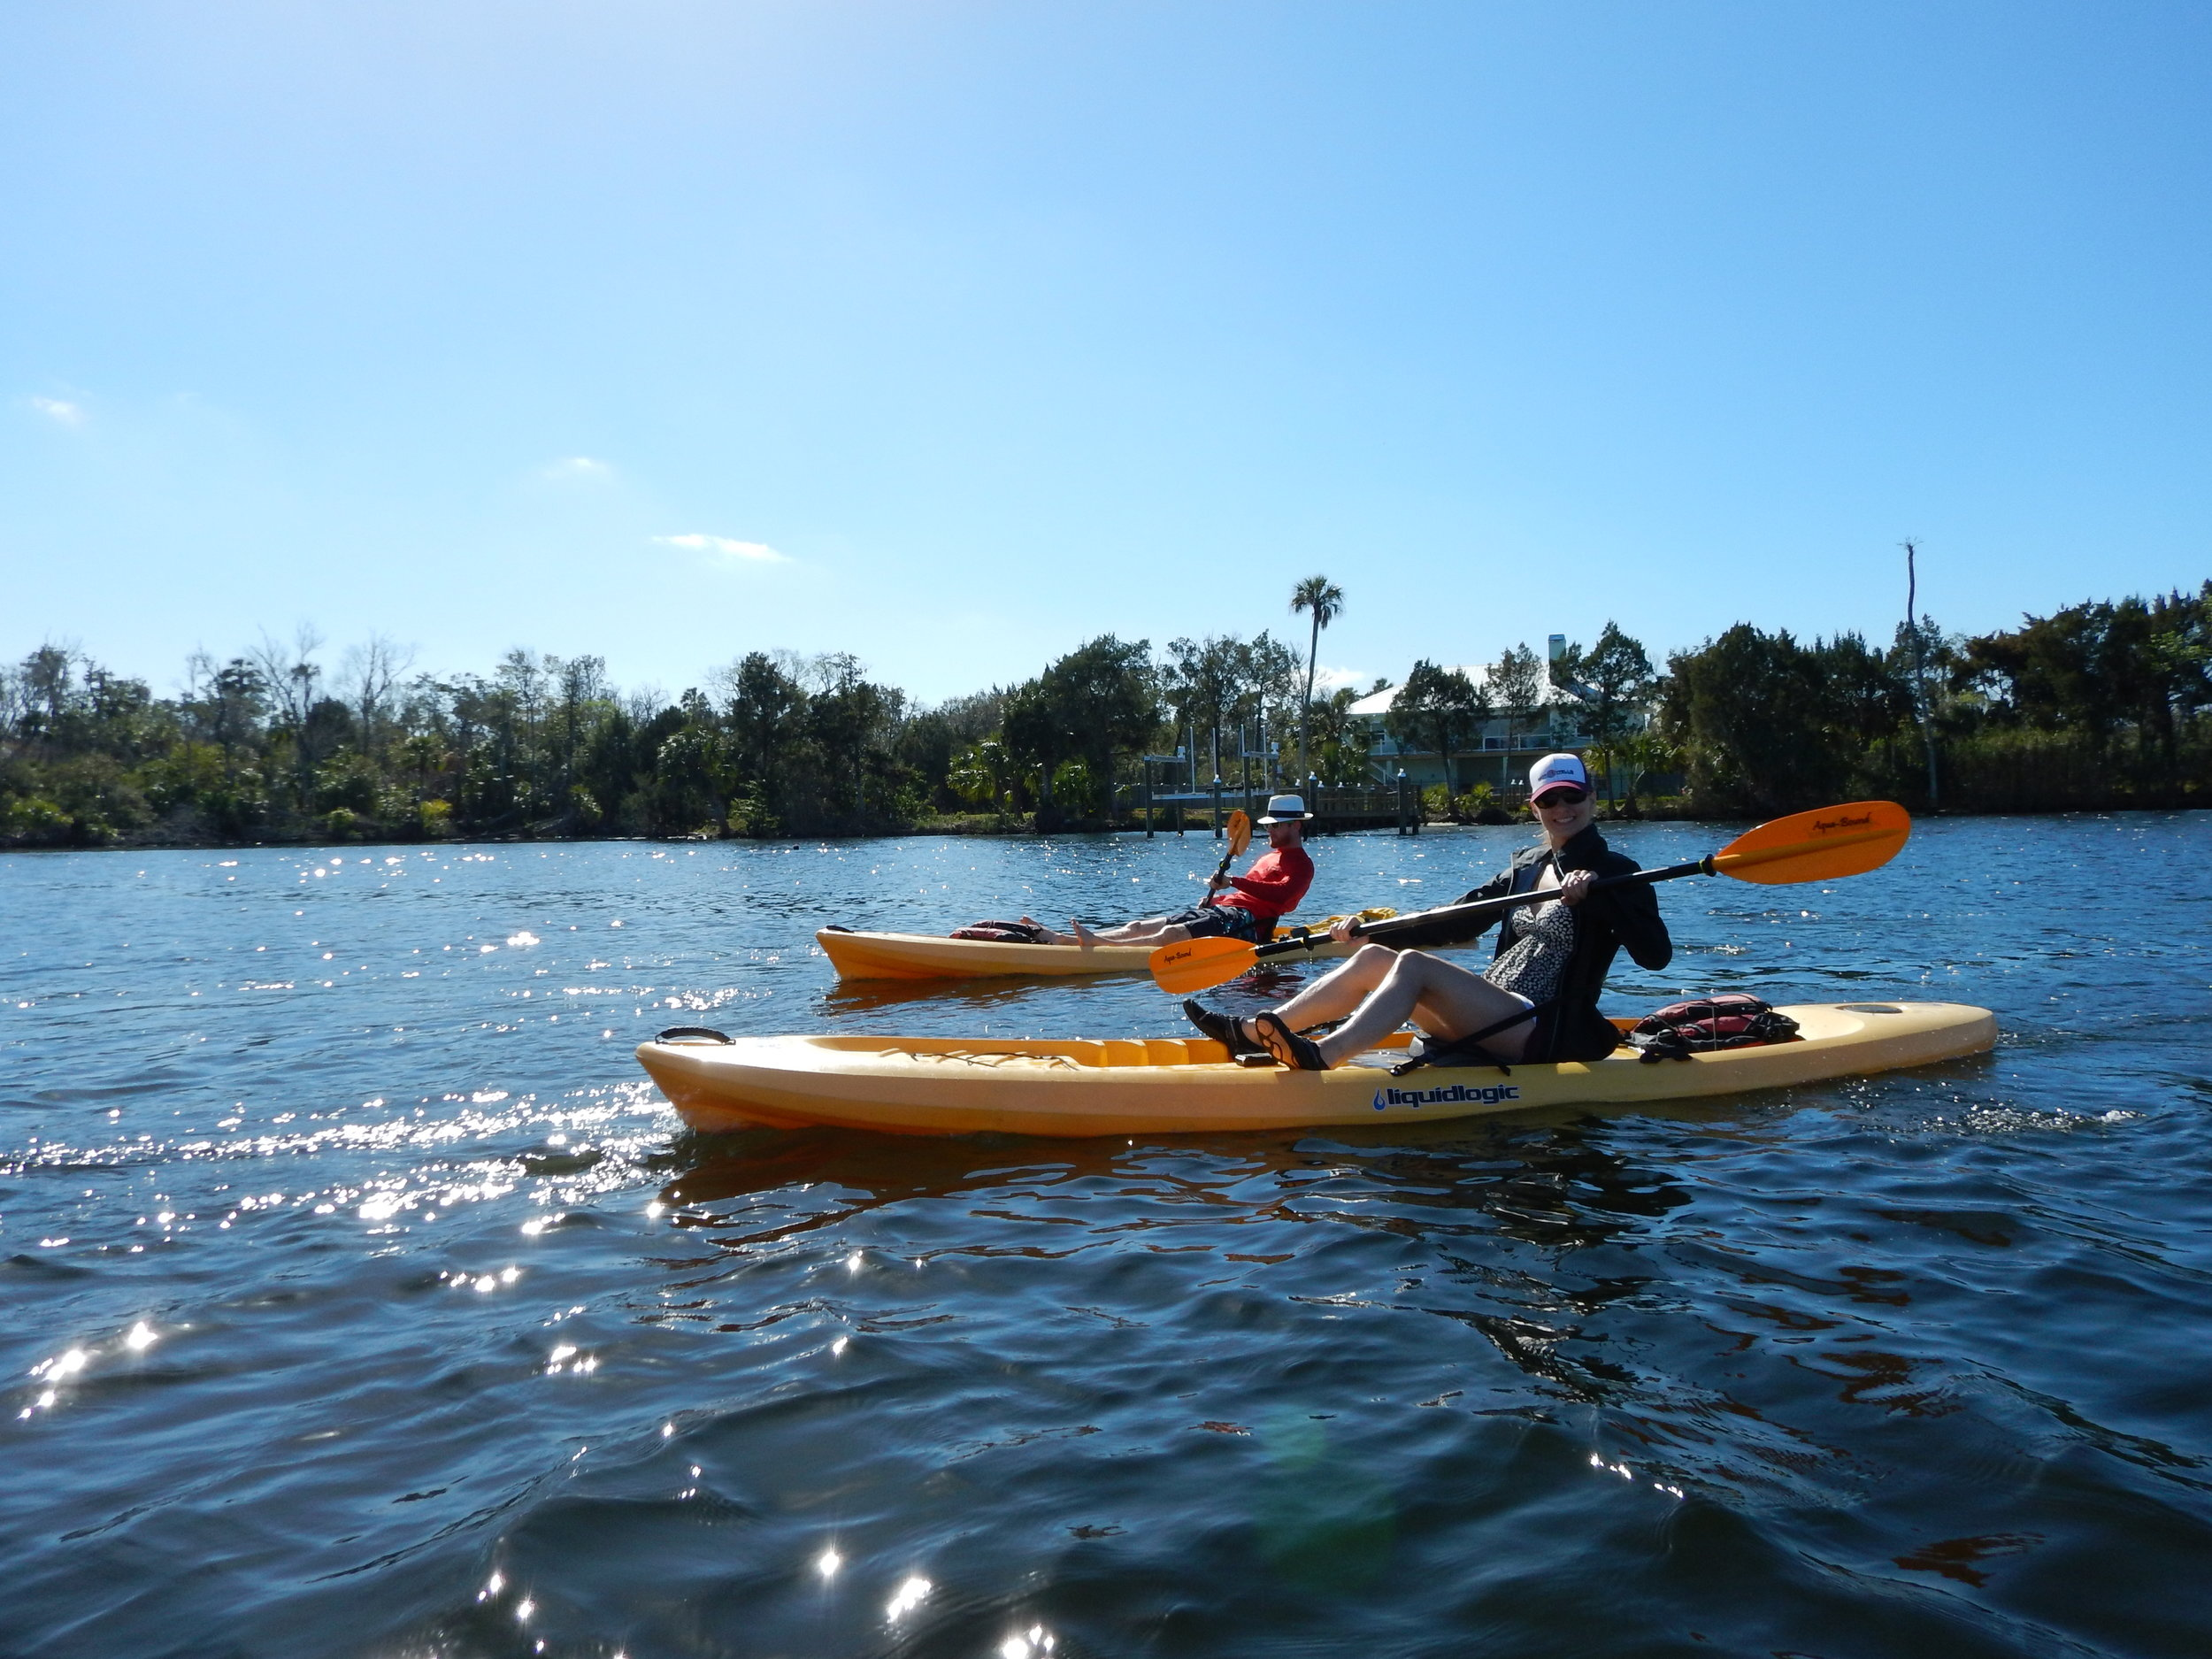 We'll explore the Homossassa River and saddle up just outside of the State Park protected manatee area.  We'll probably even see some visitors.  This paddle is about an hour north of Tampa in the heart of the Homossassa community.  Due to high boating traffic, this tour only offered in Late fall and winter months.